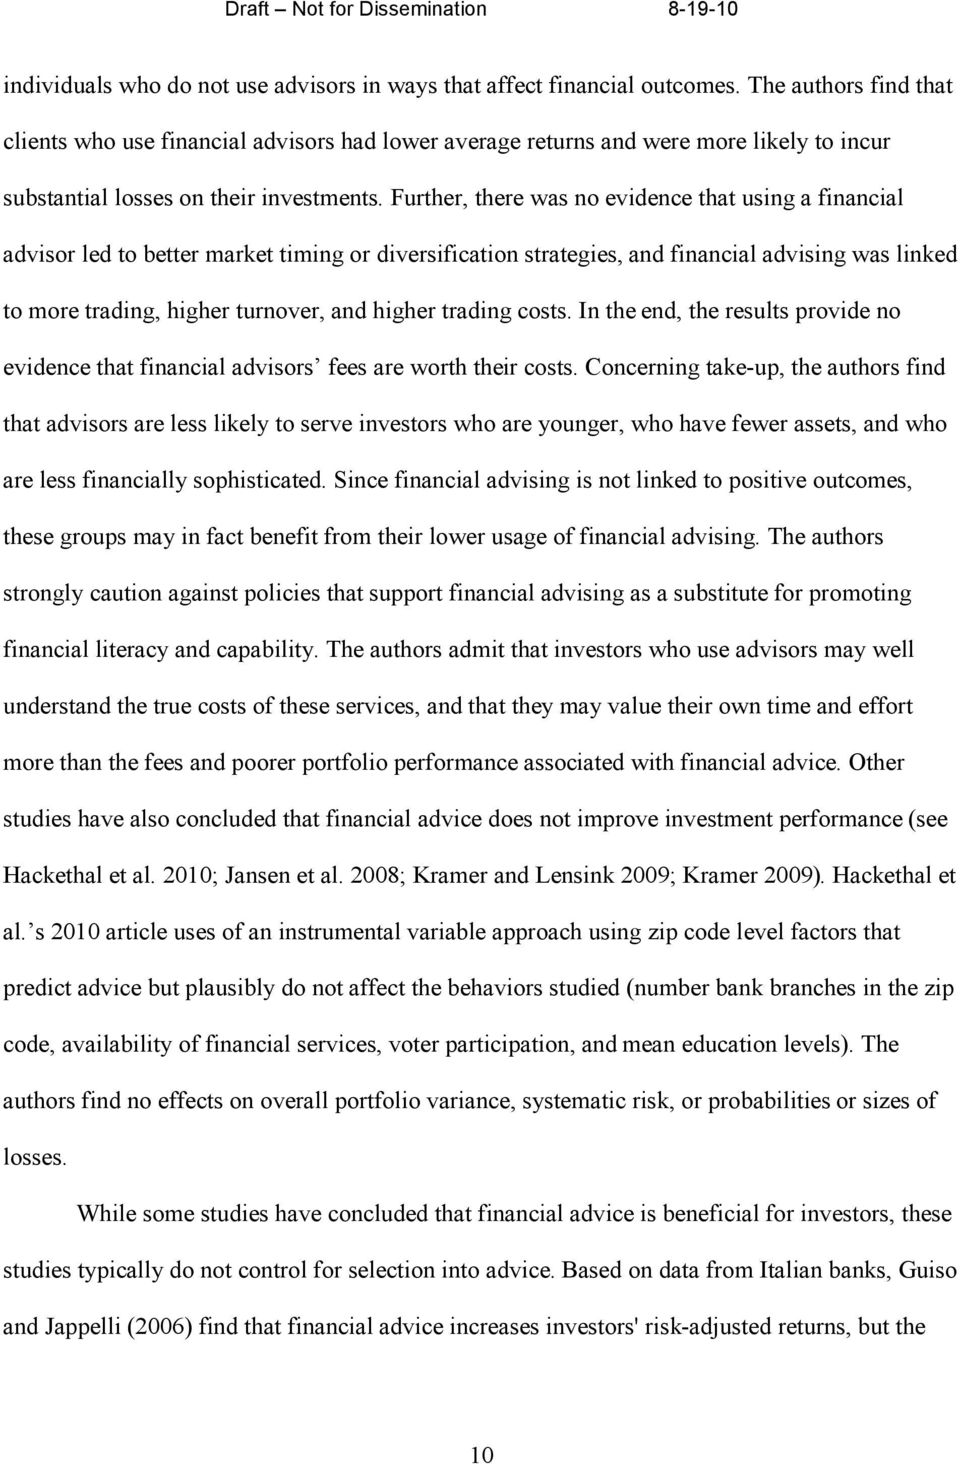 Further, there was no evidence that using a financial advisor led to better market timing or diversification strategies, and financial advising was linked to more trading, higher turnover, and higher